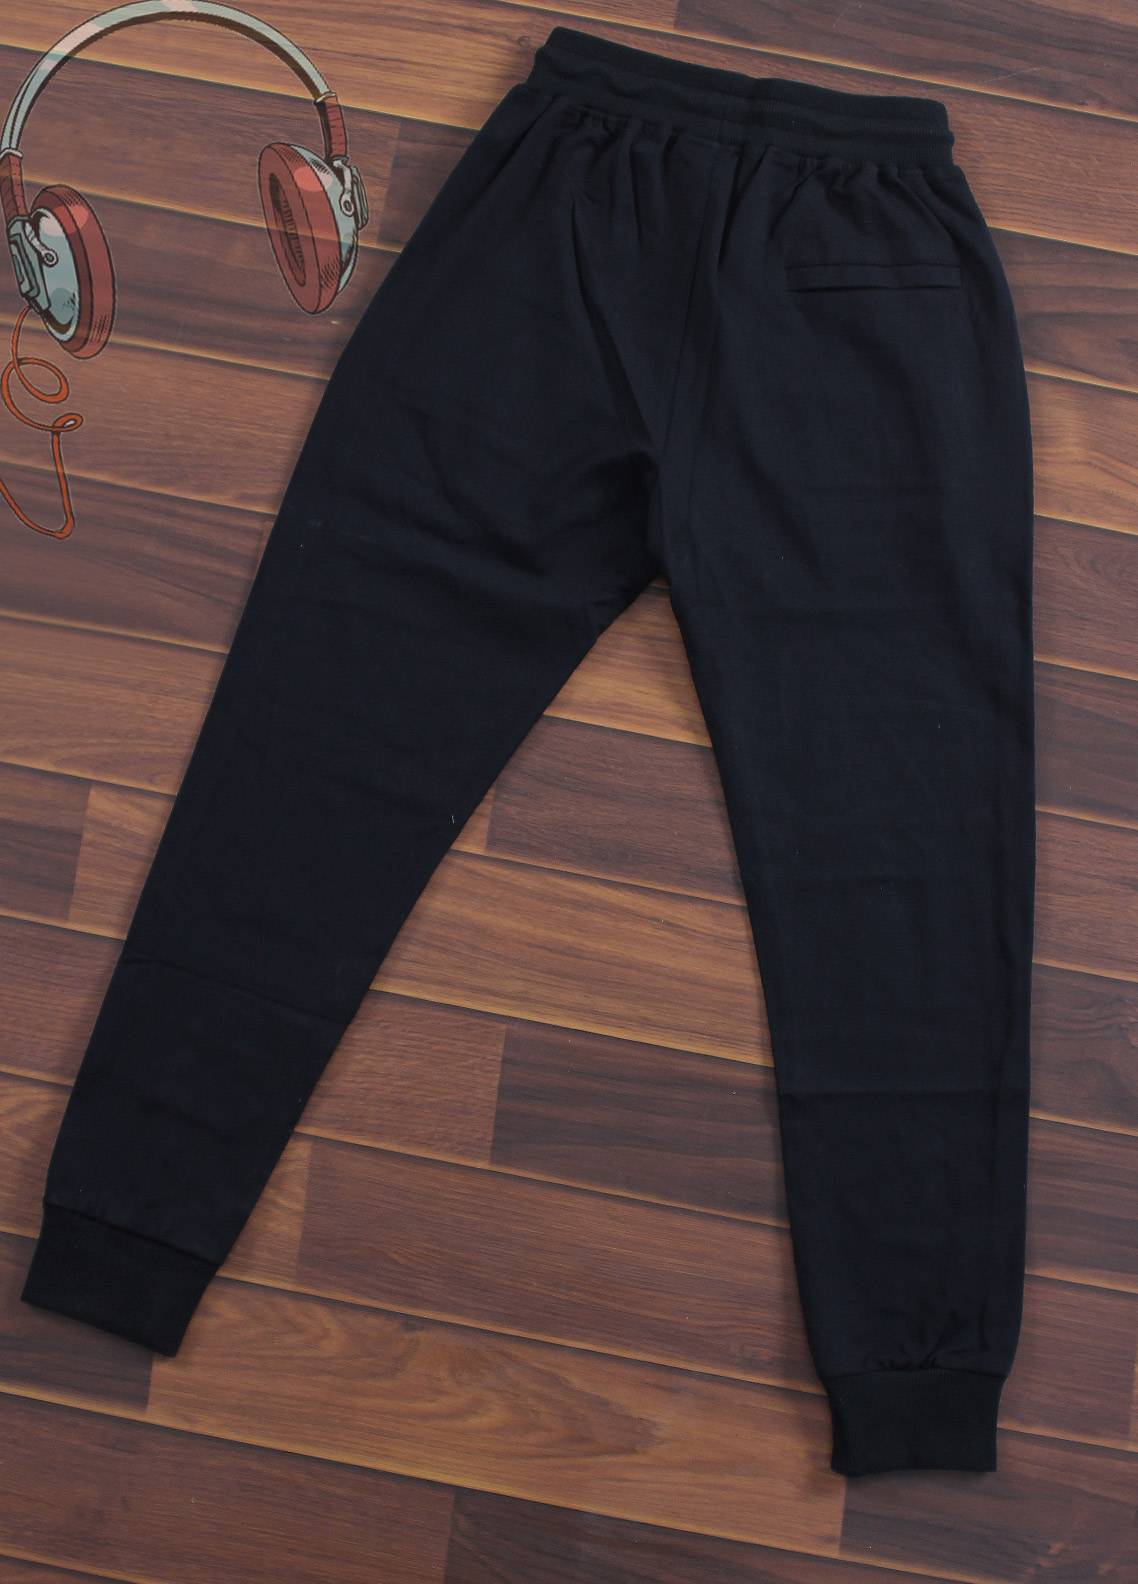 Sanaulla Exclusive Range Jersey Casual Boys Trousers -  7227-Black